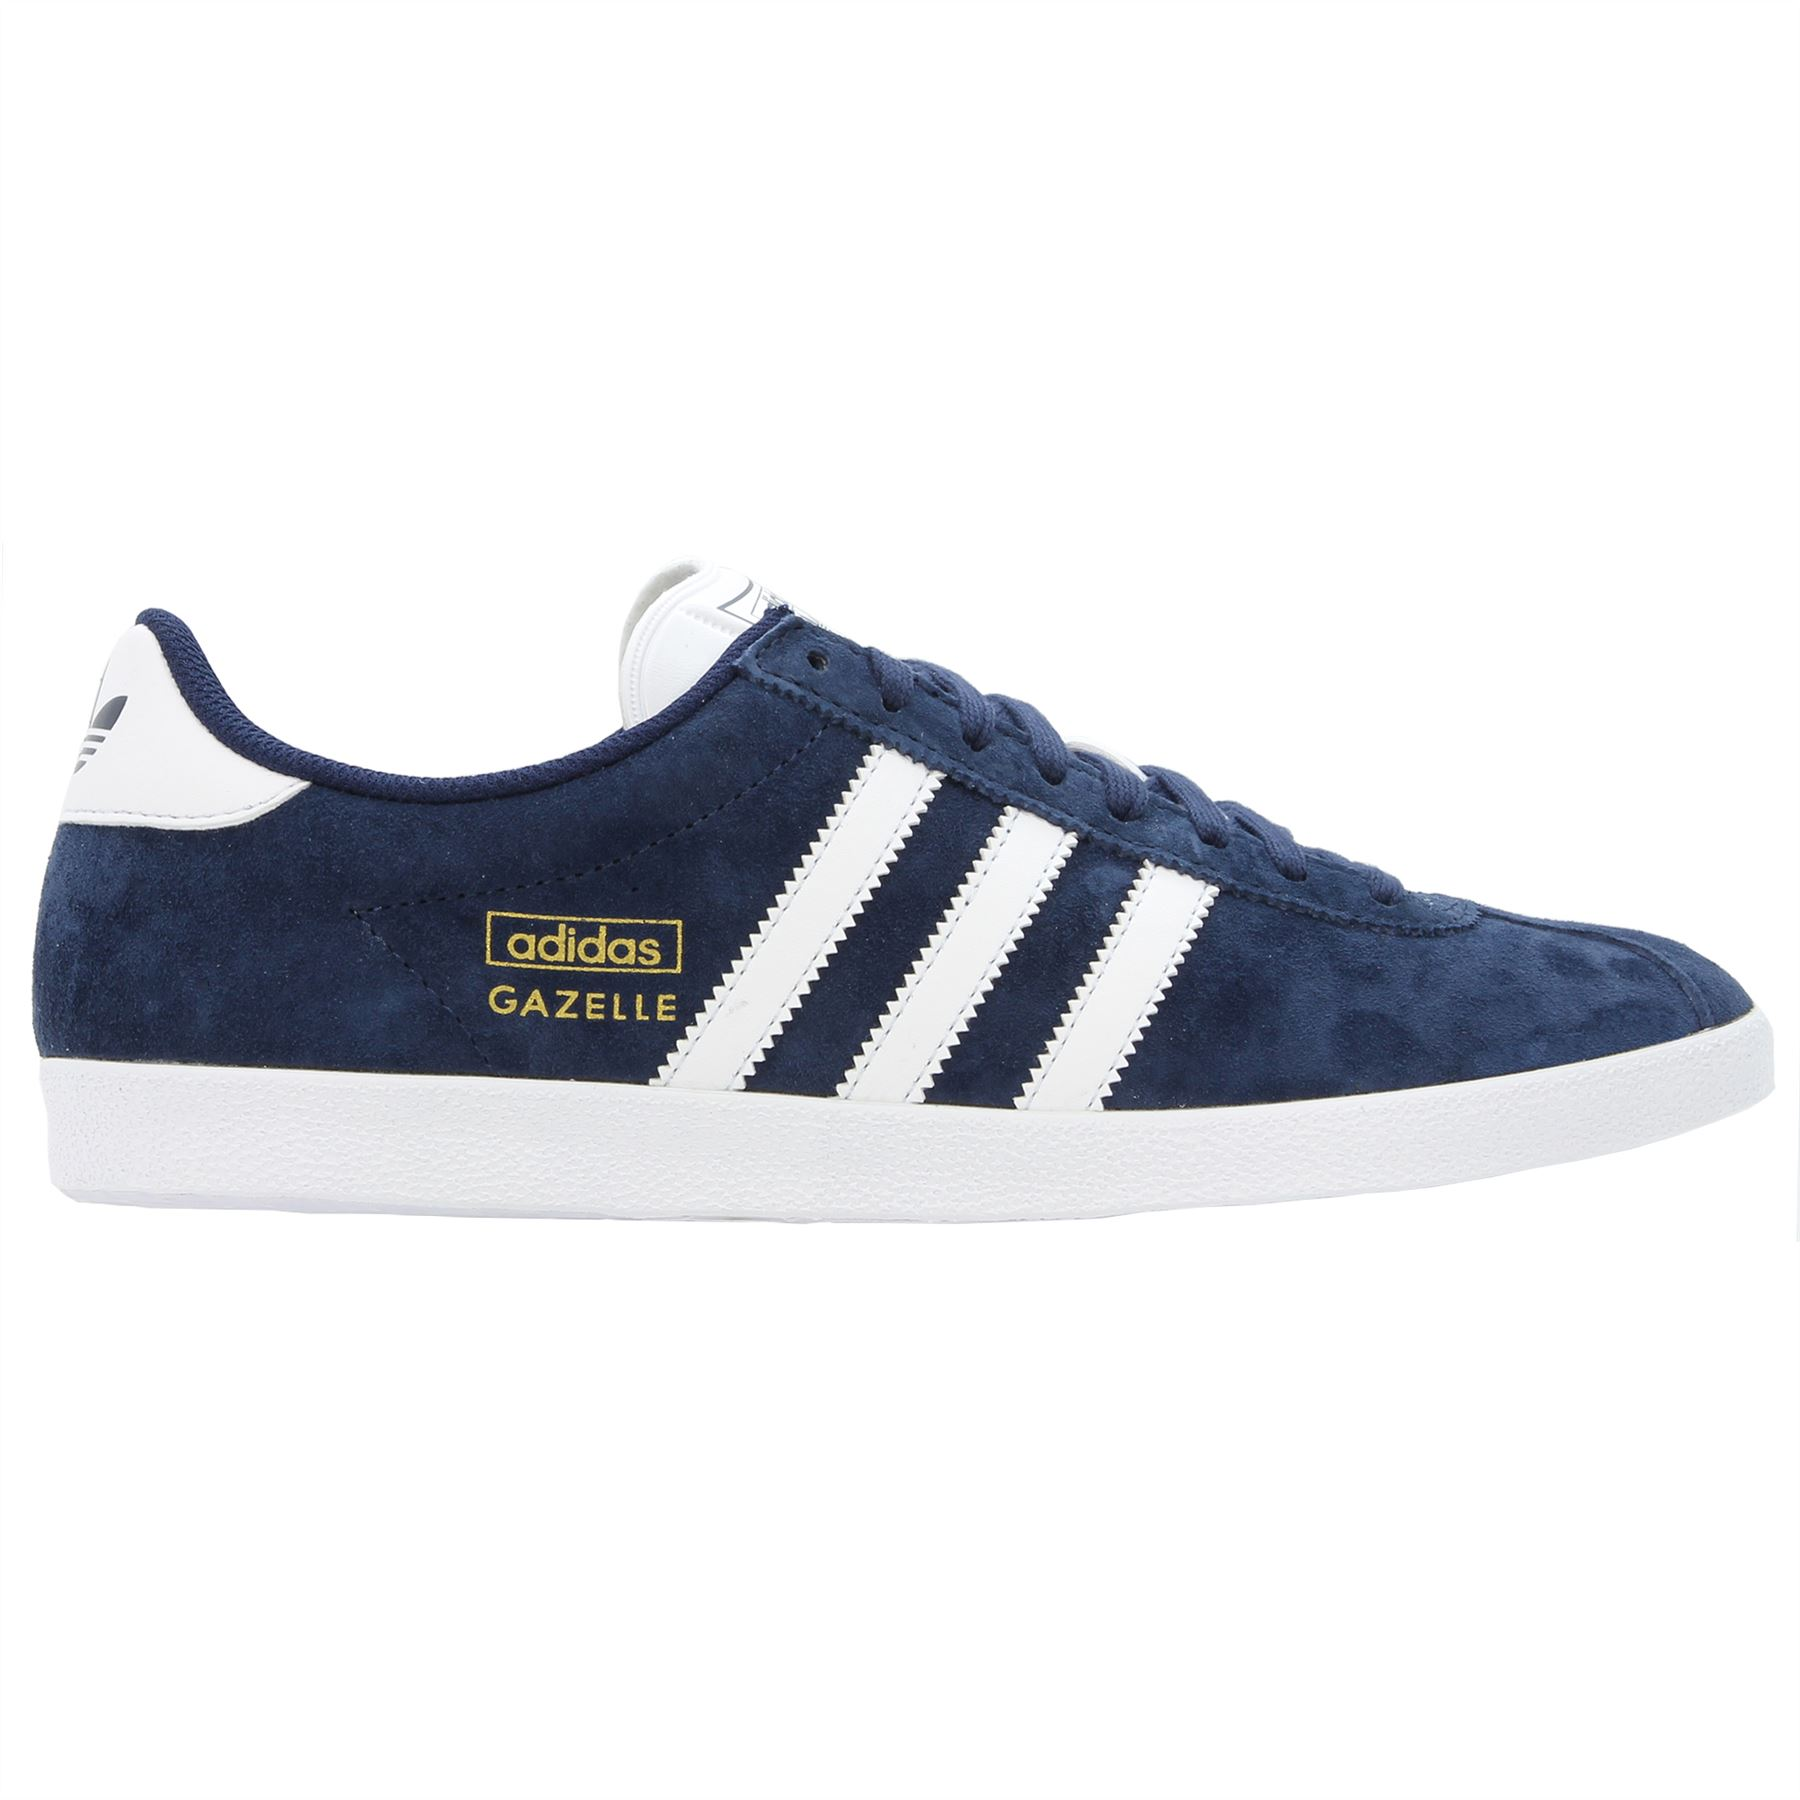 mens adidas gazelle trainers black